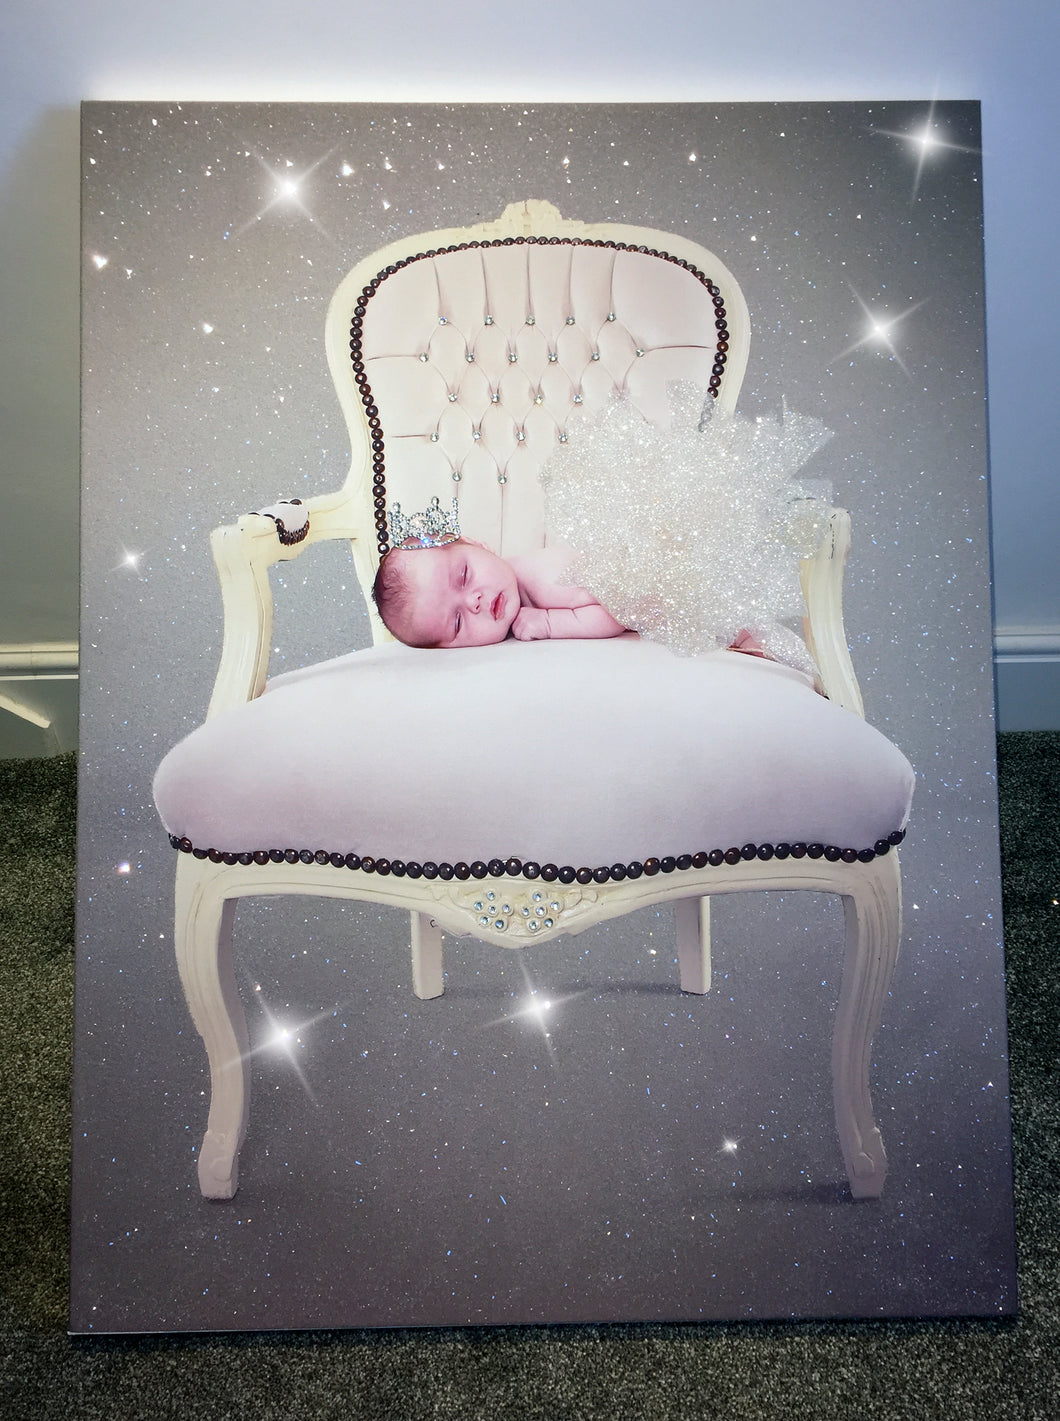 Diamond Encrusted Canvas - Your Own Image